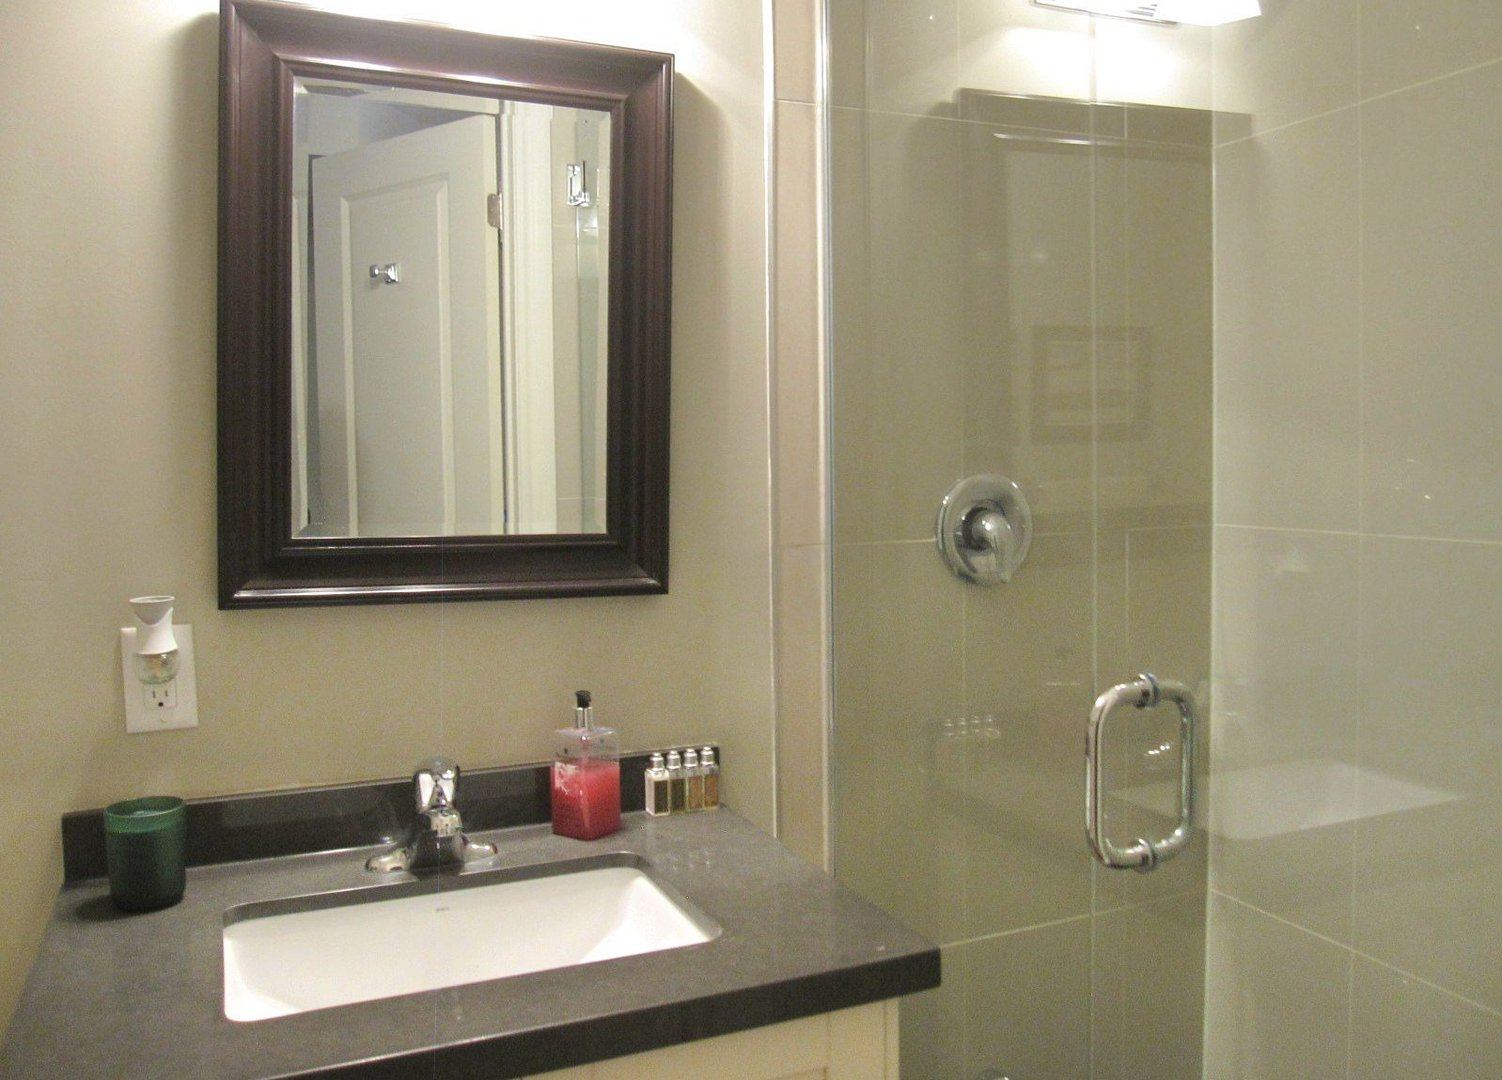 House for rent at 18 Algoma St, Etobicoke, ON. This is the bathroom.